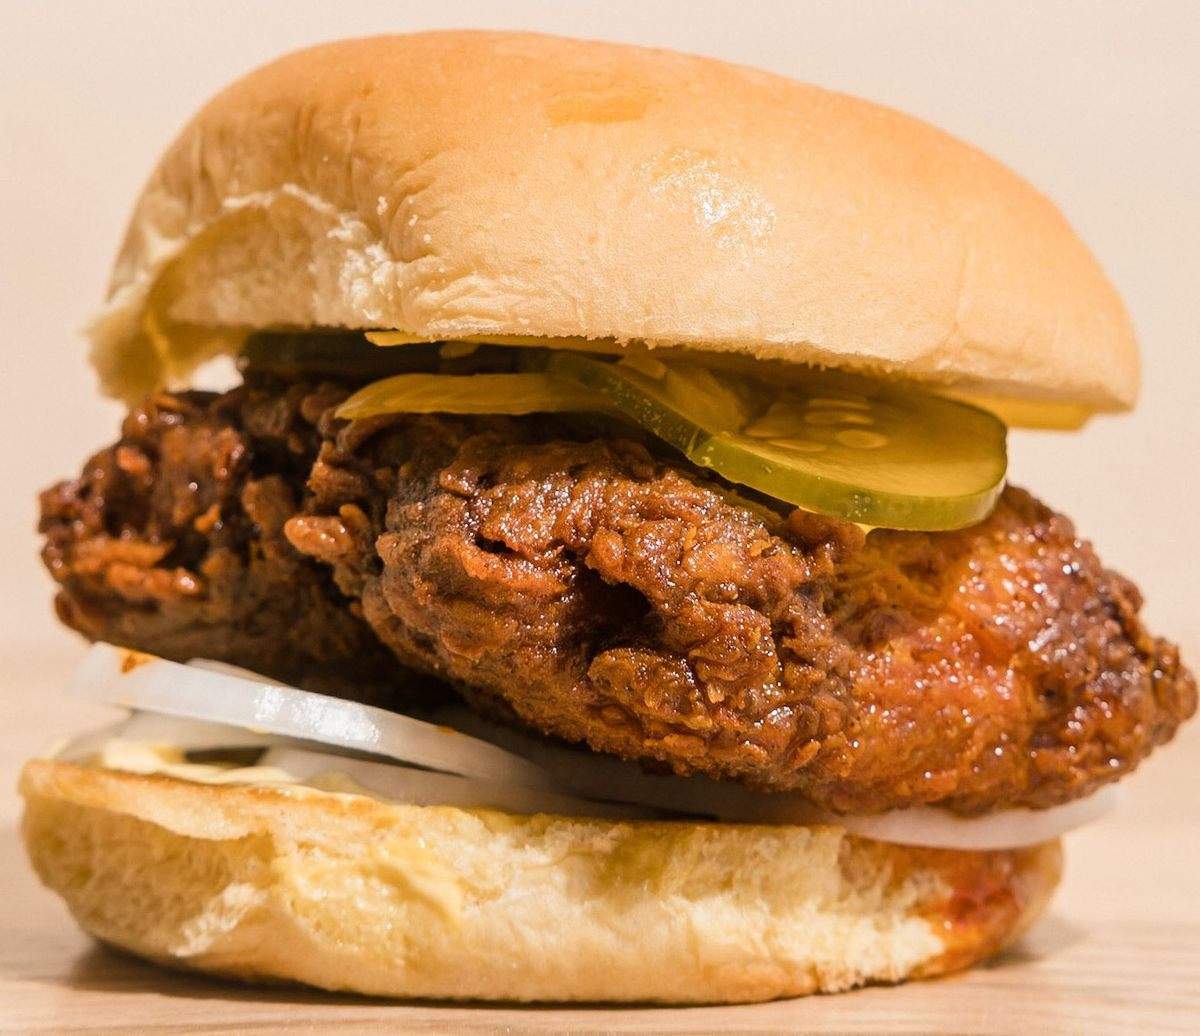 A fried fish sandwich on a bun with pickles and onions.